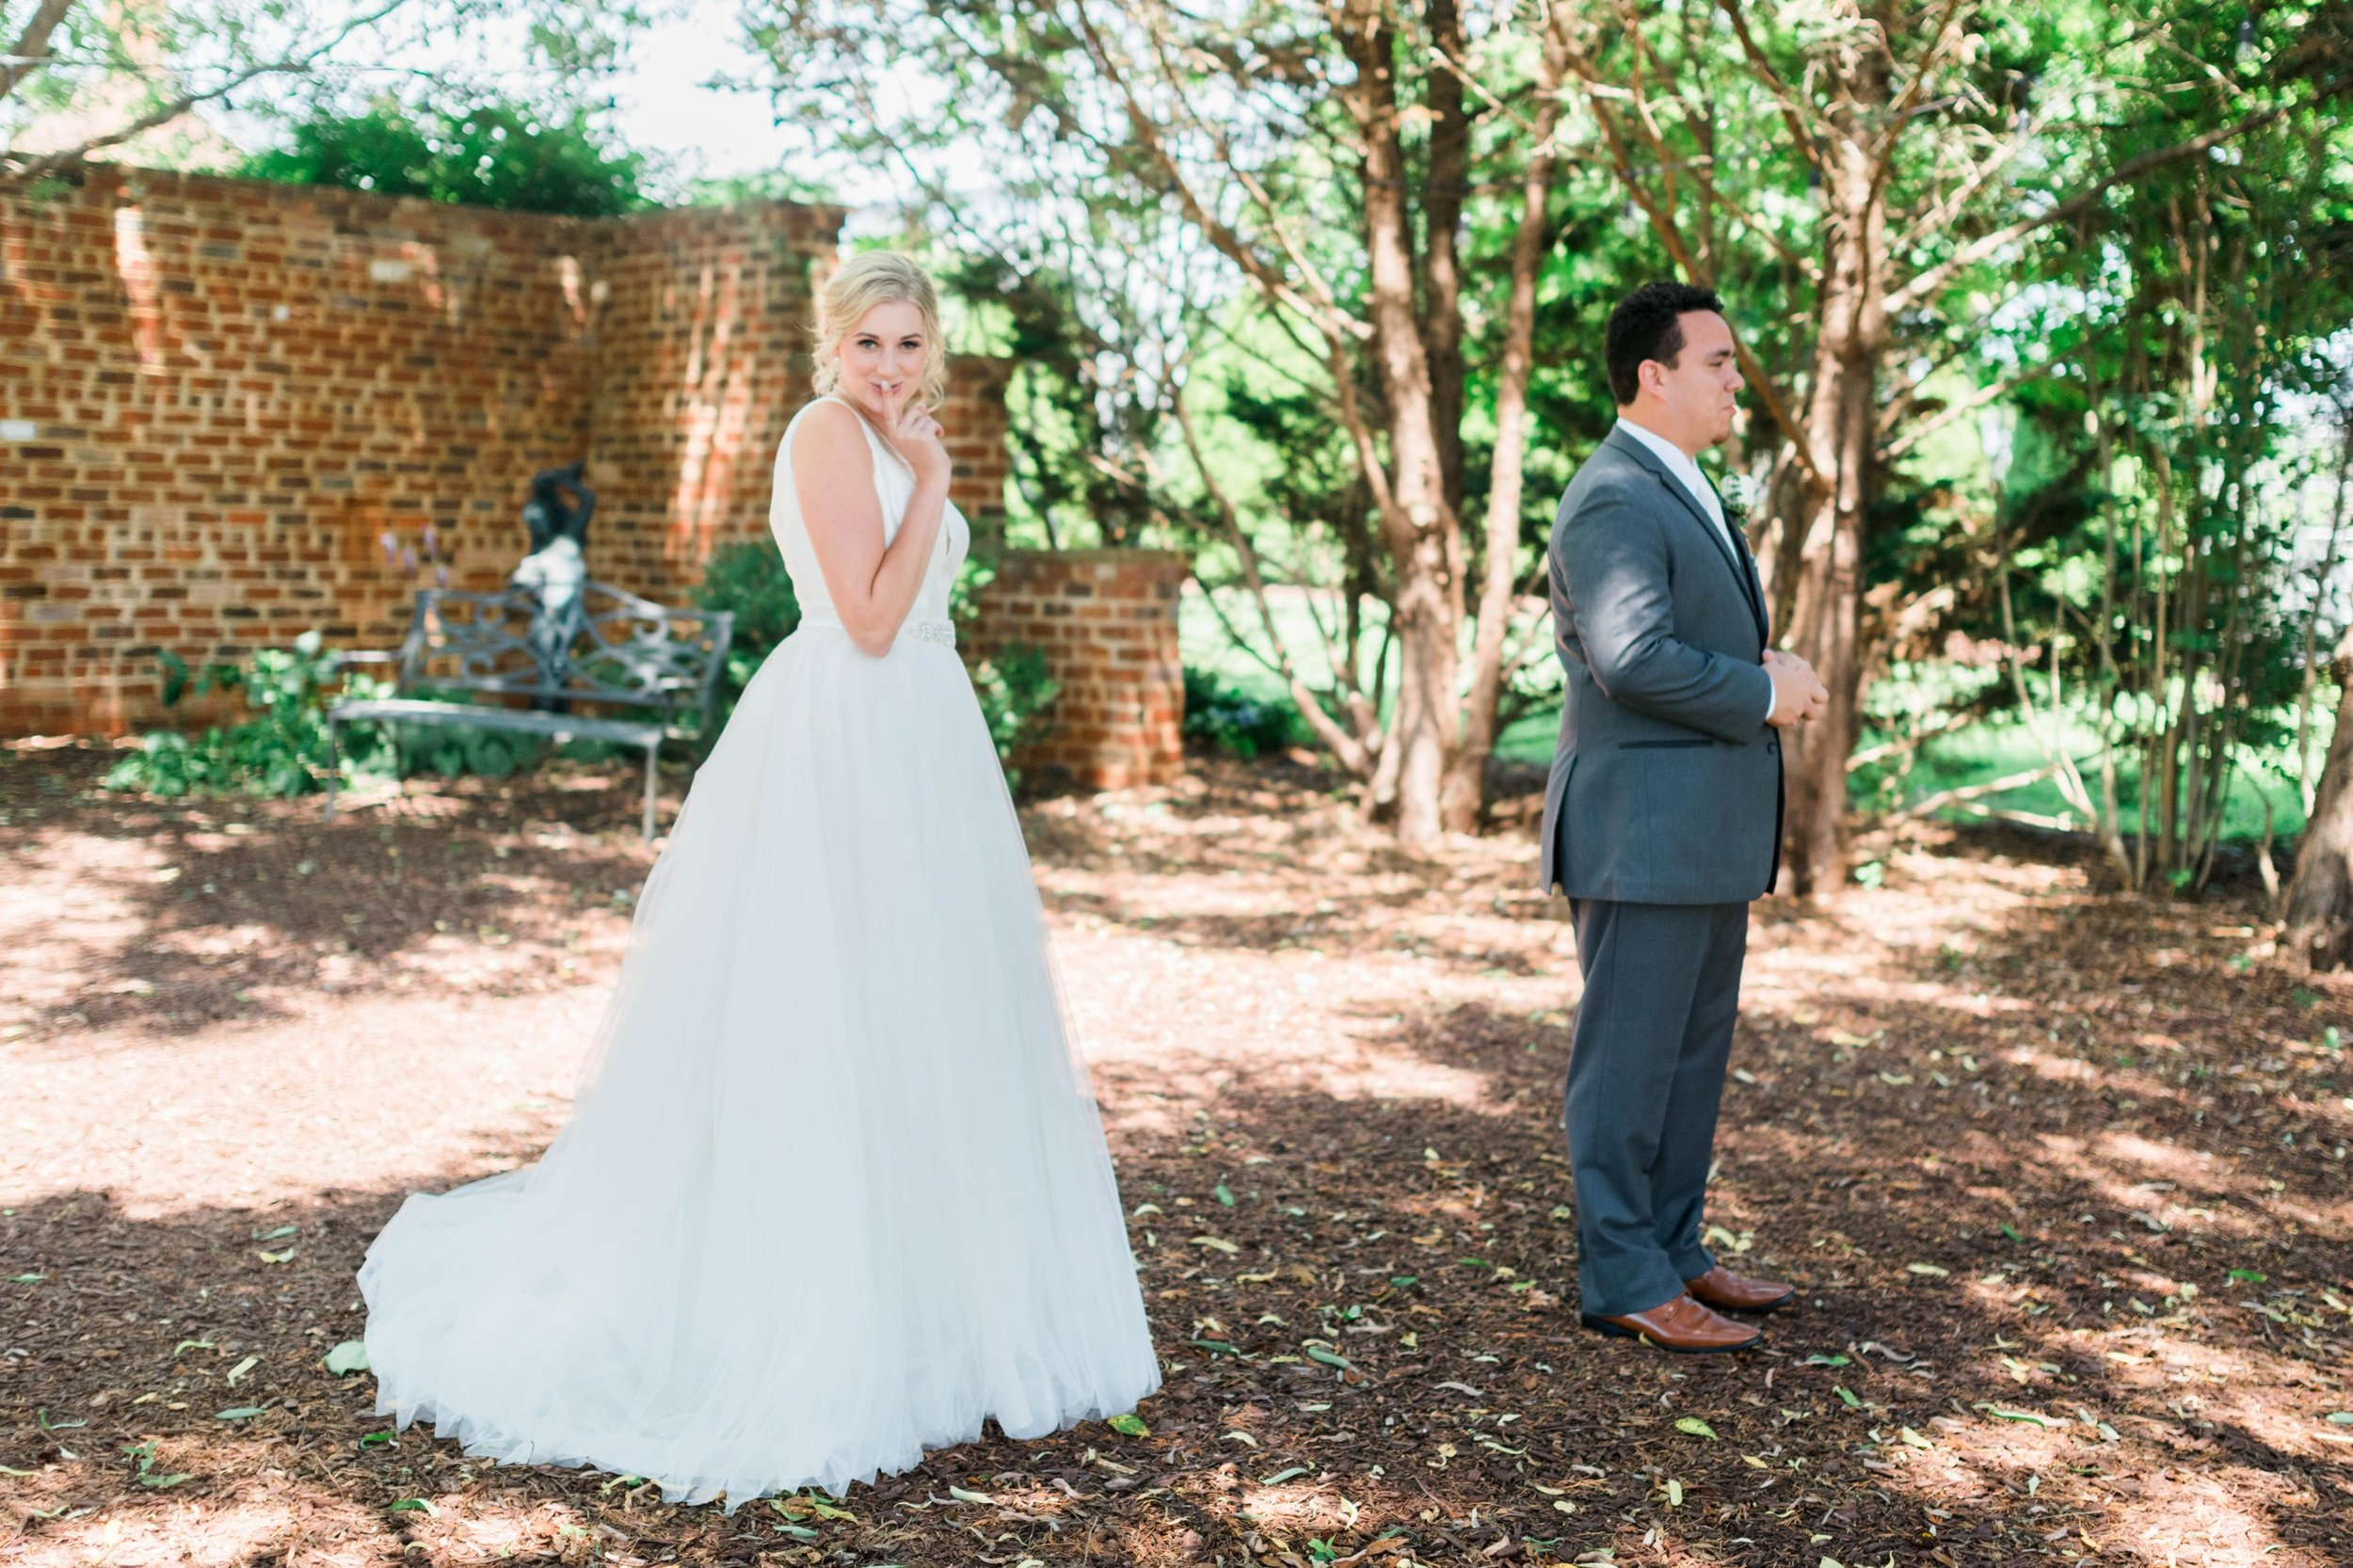 westmanorestate_entwinedevents_lynchburgweddingphotographer_Virginiaweddingphotographer_kateyam 24.jpg